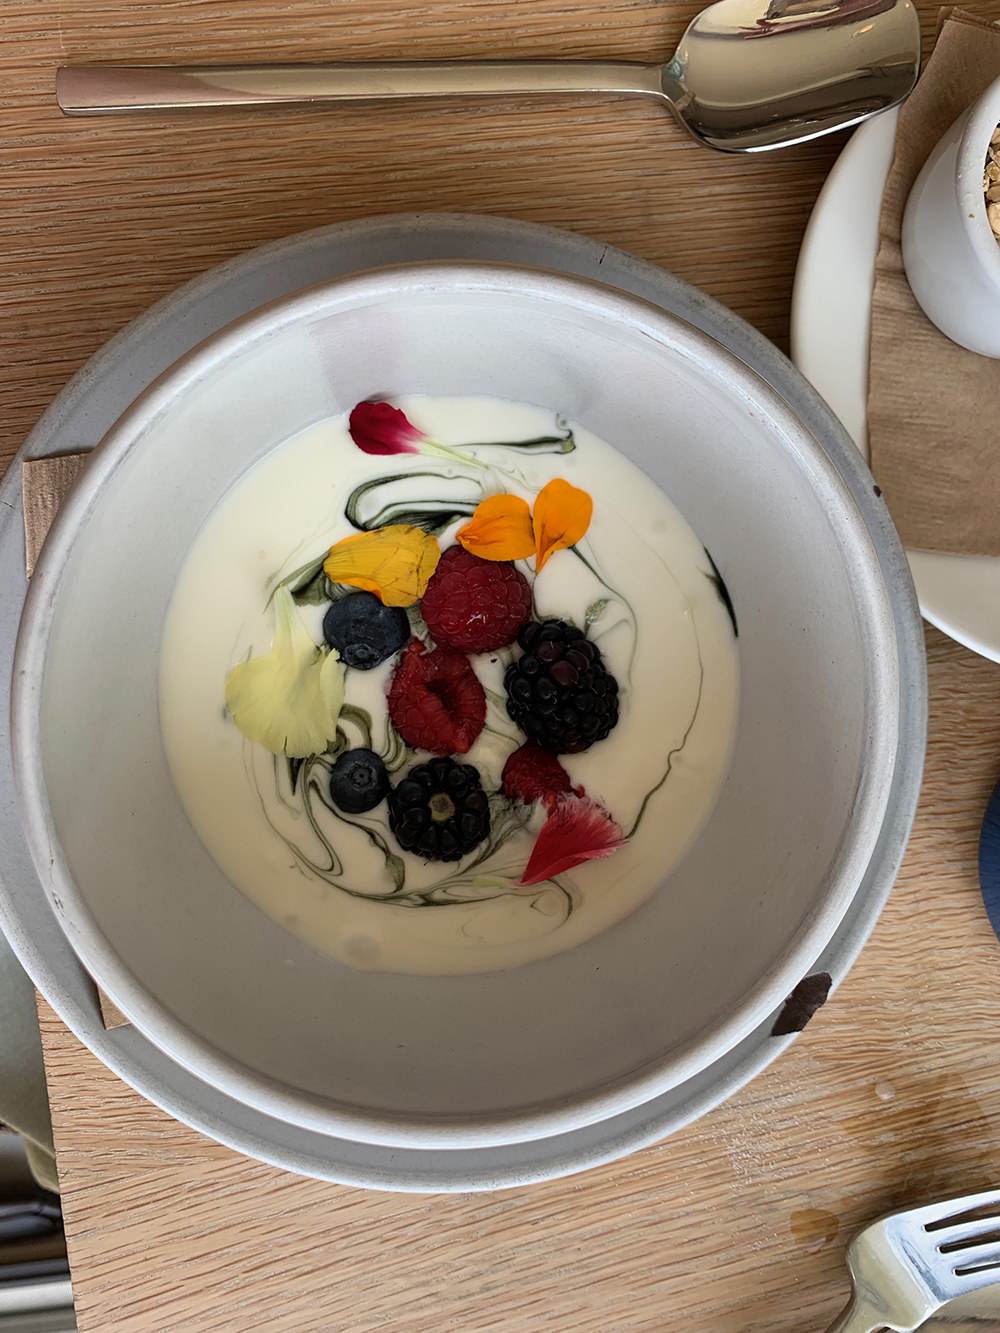 The house-made Lemon Chlorophyll Yogurt with house hemp granola and market berries.